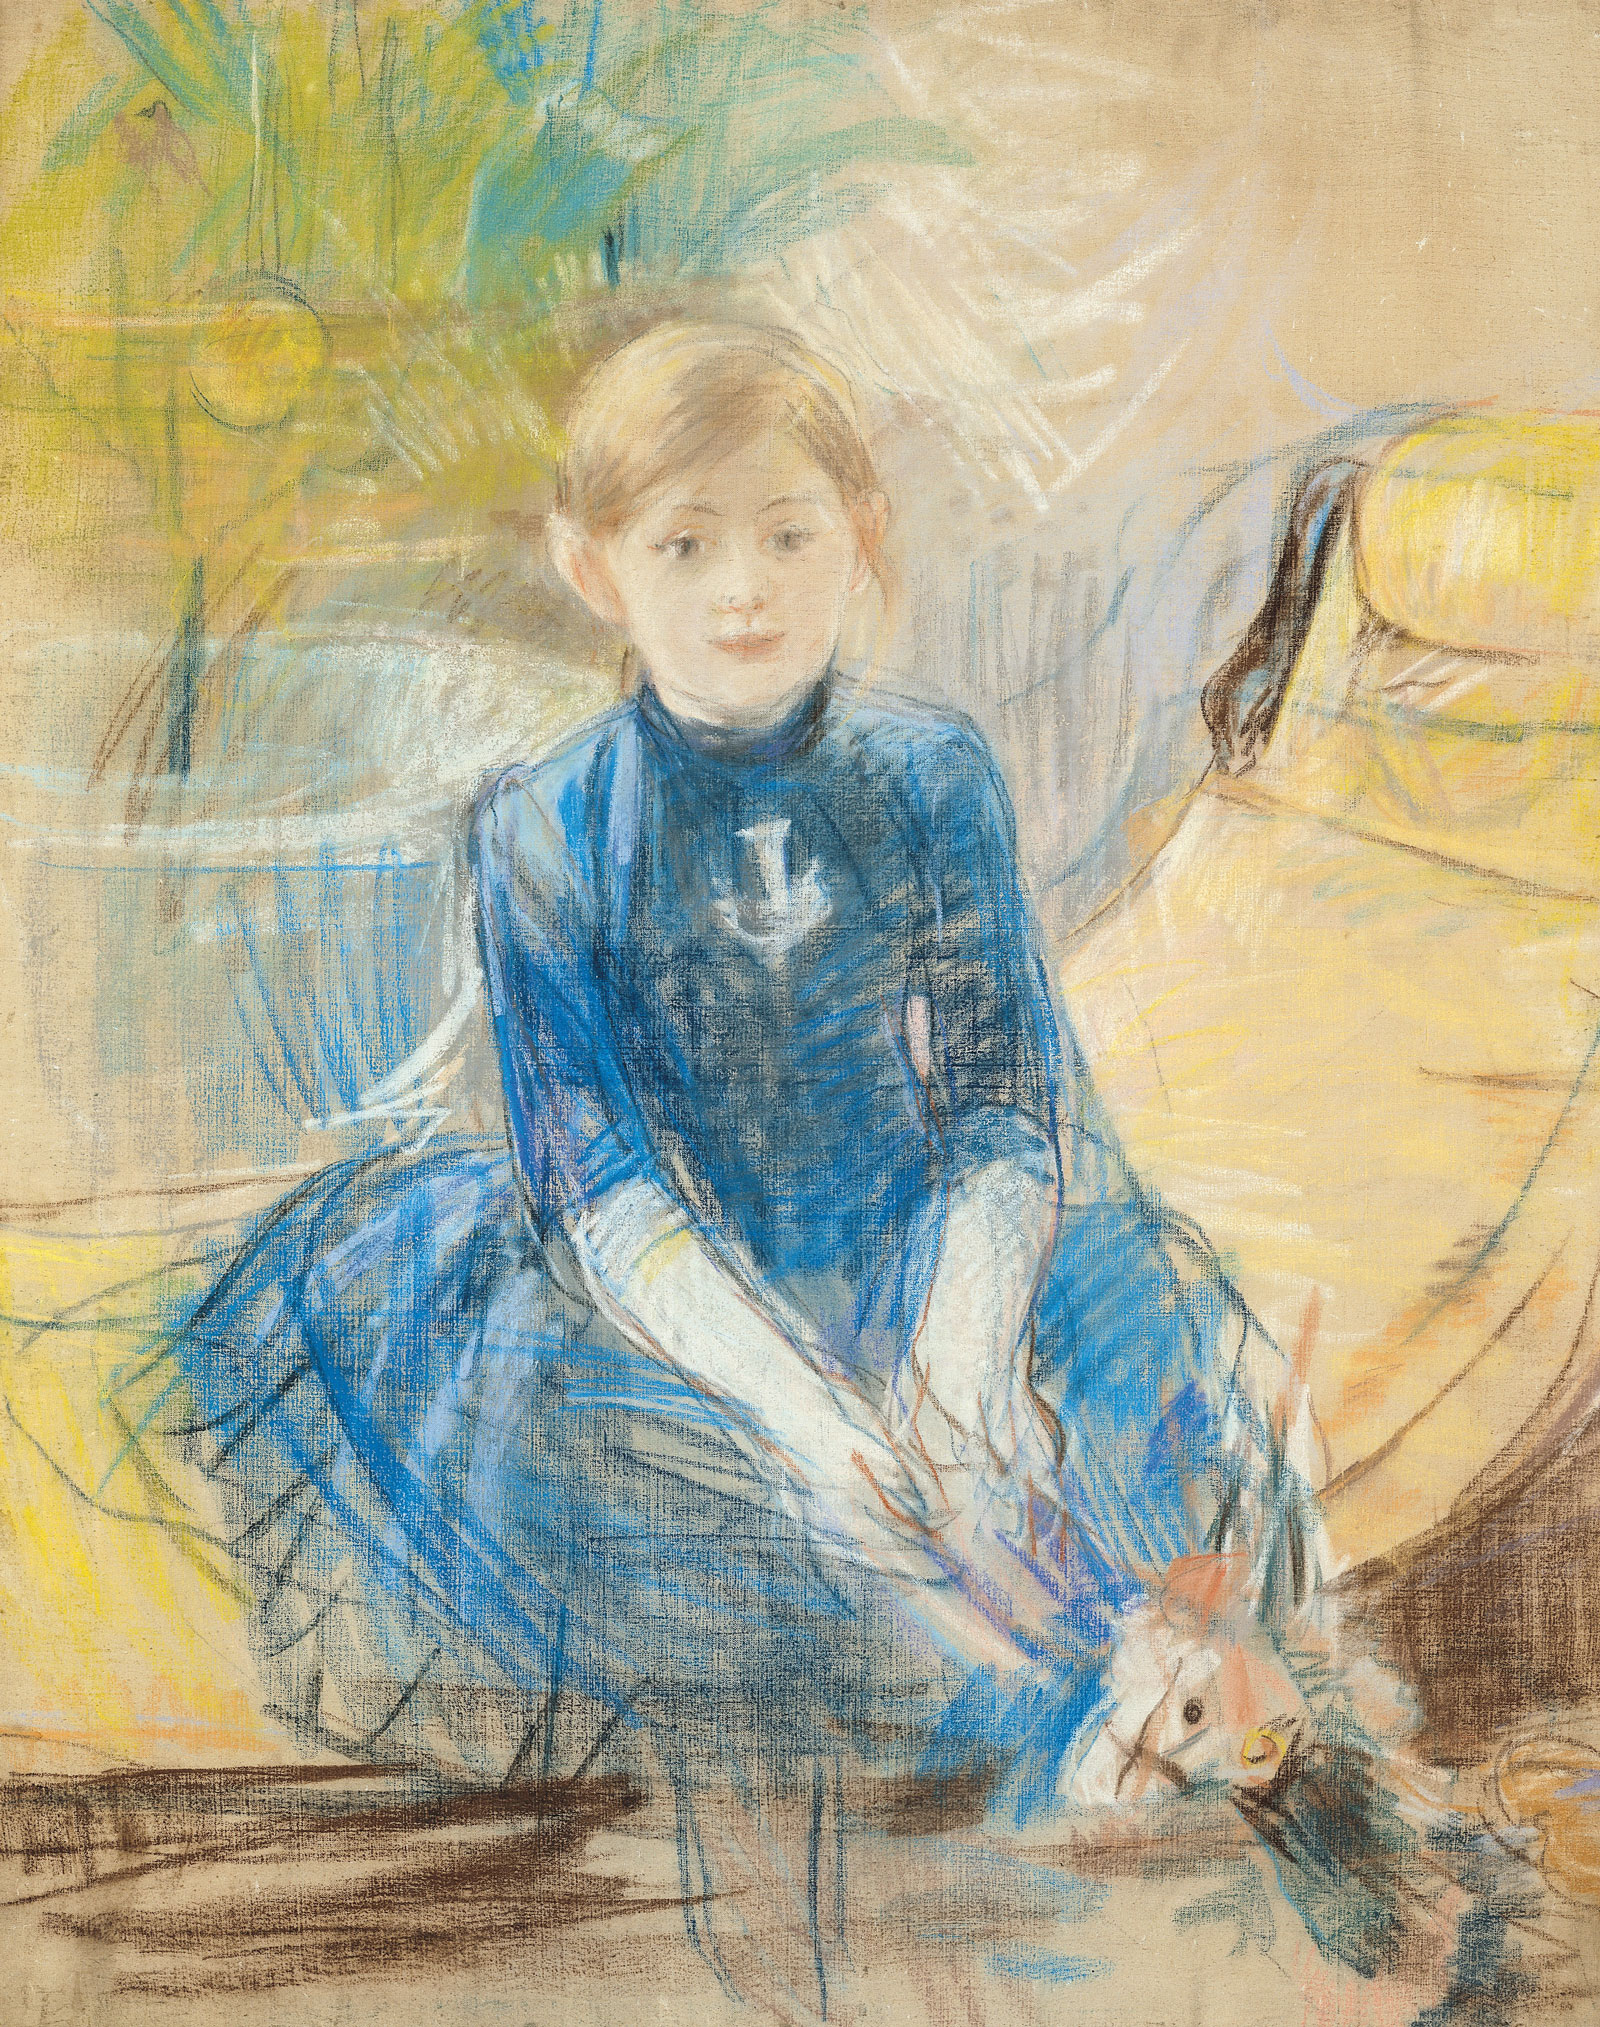 Painting of a girl in a blue dress sitting on a yellow chair